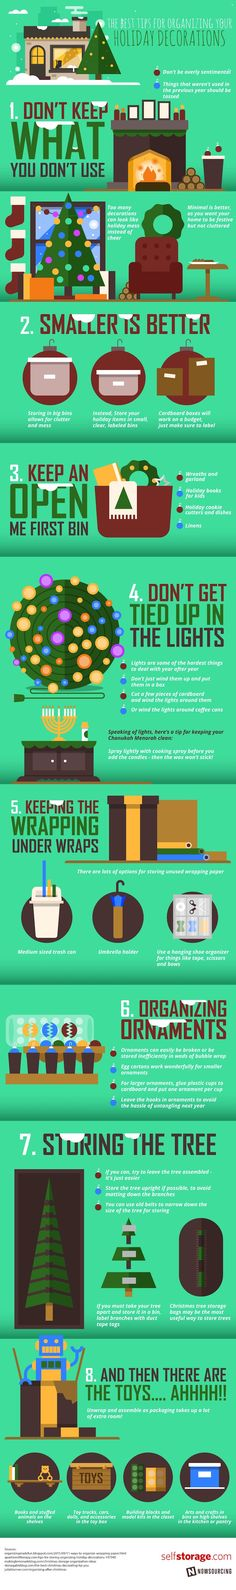 Tips to Organize Your Holiday Decorations Quick and Efficiently - TIPS�GRAPHIC